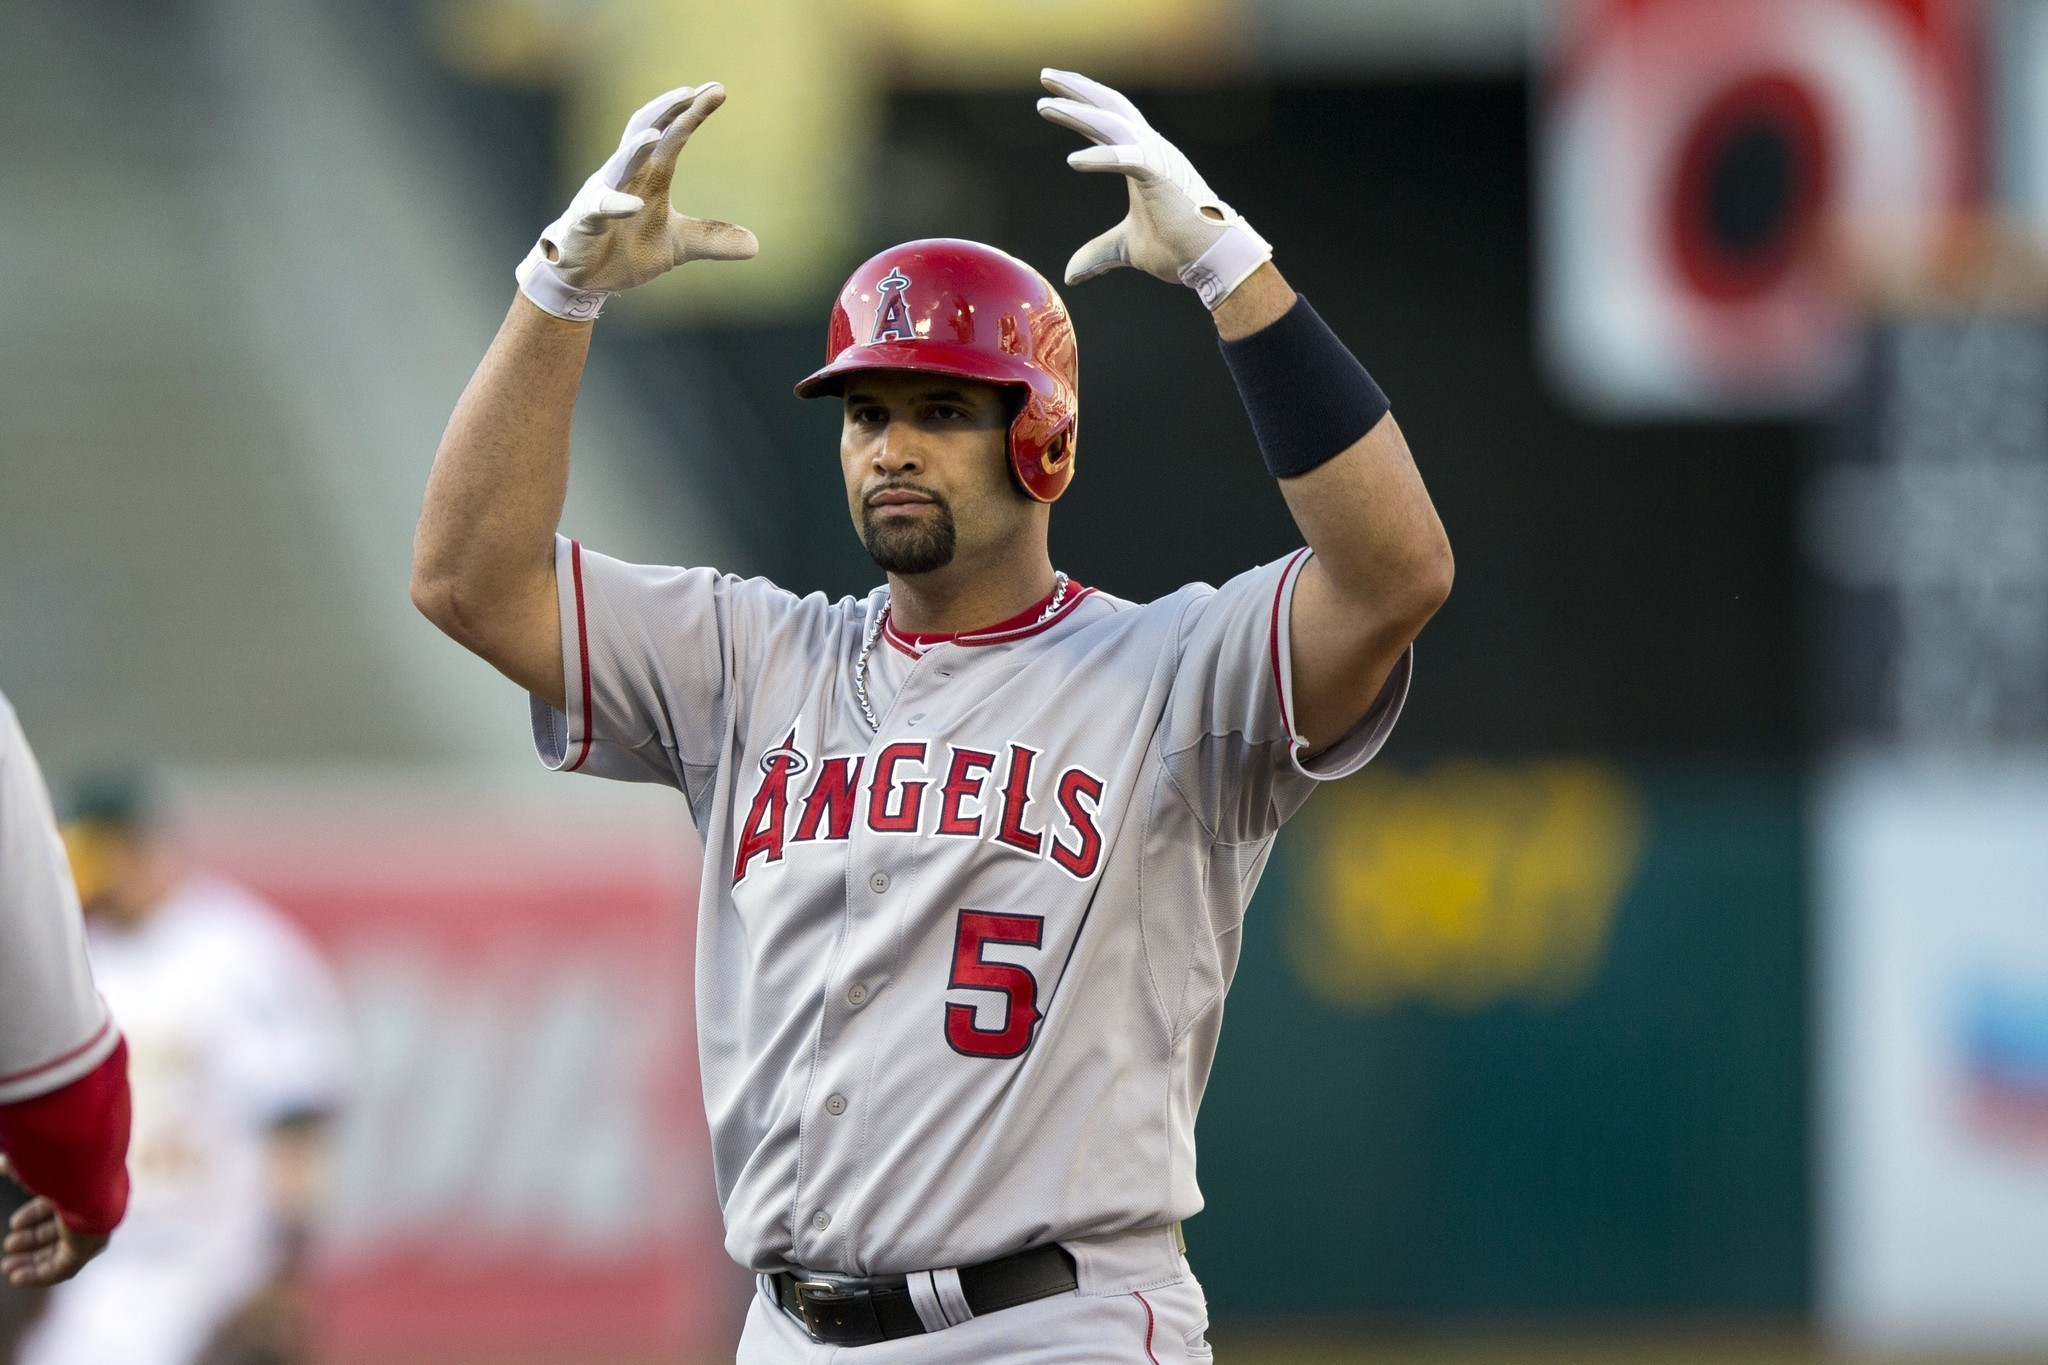 albert pujols With 17 seasons in the majors under his belt, albert pujols reached the 3,000 hit  plateau against the mariners on friday with a single to right.